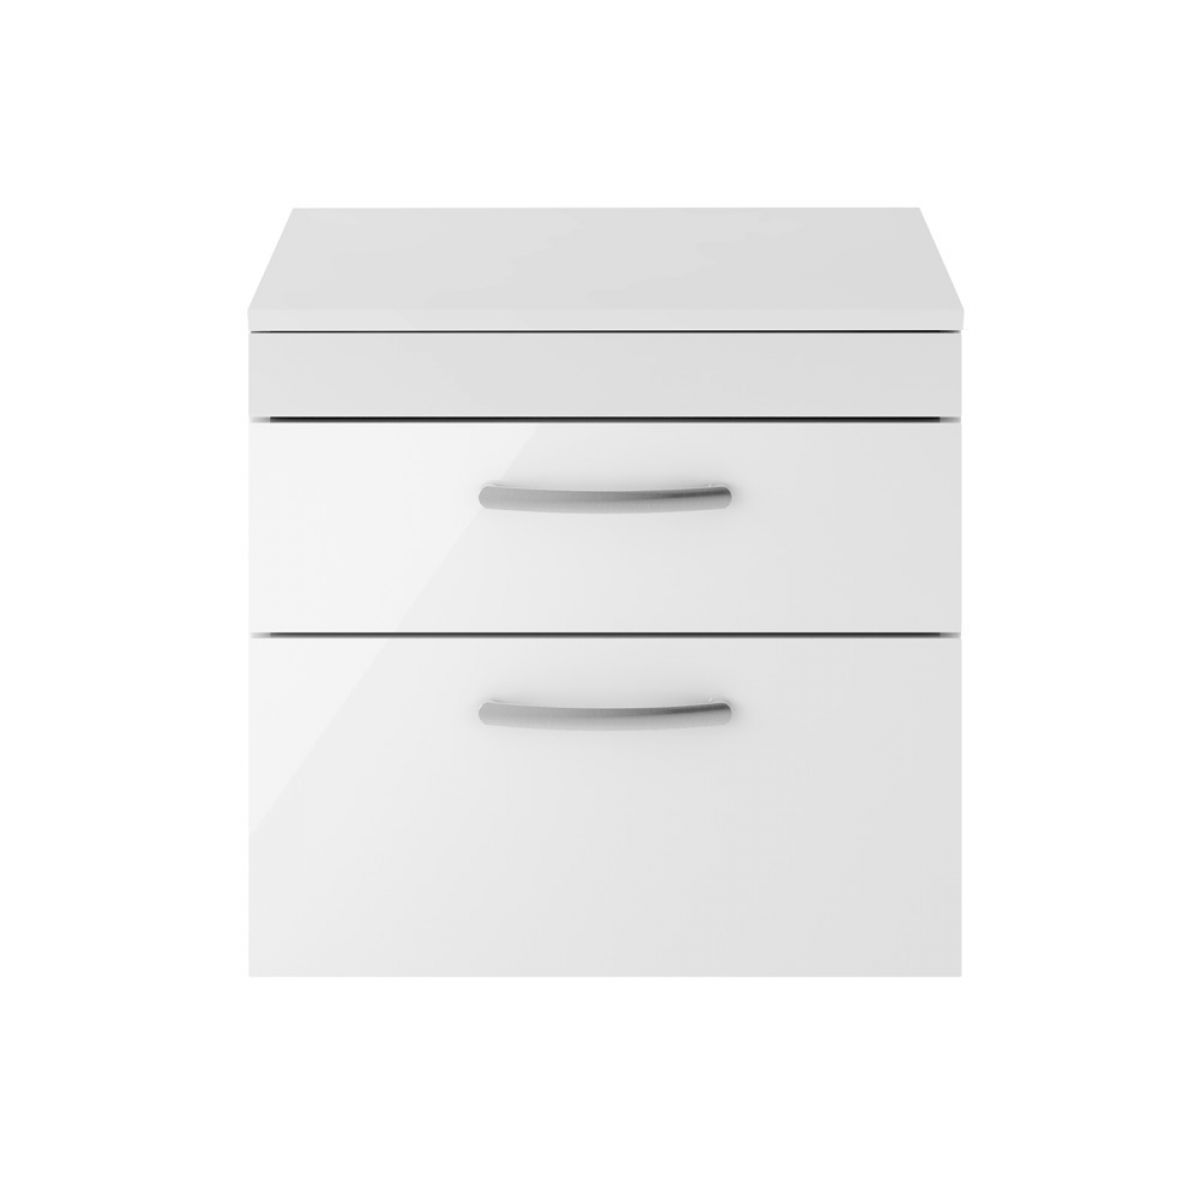 Premier Athena Gloss White 2 Drawer Wall Hung Vanity Unit 600mm with Slimline Basin